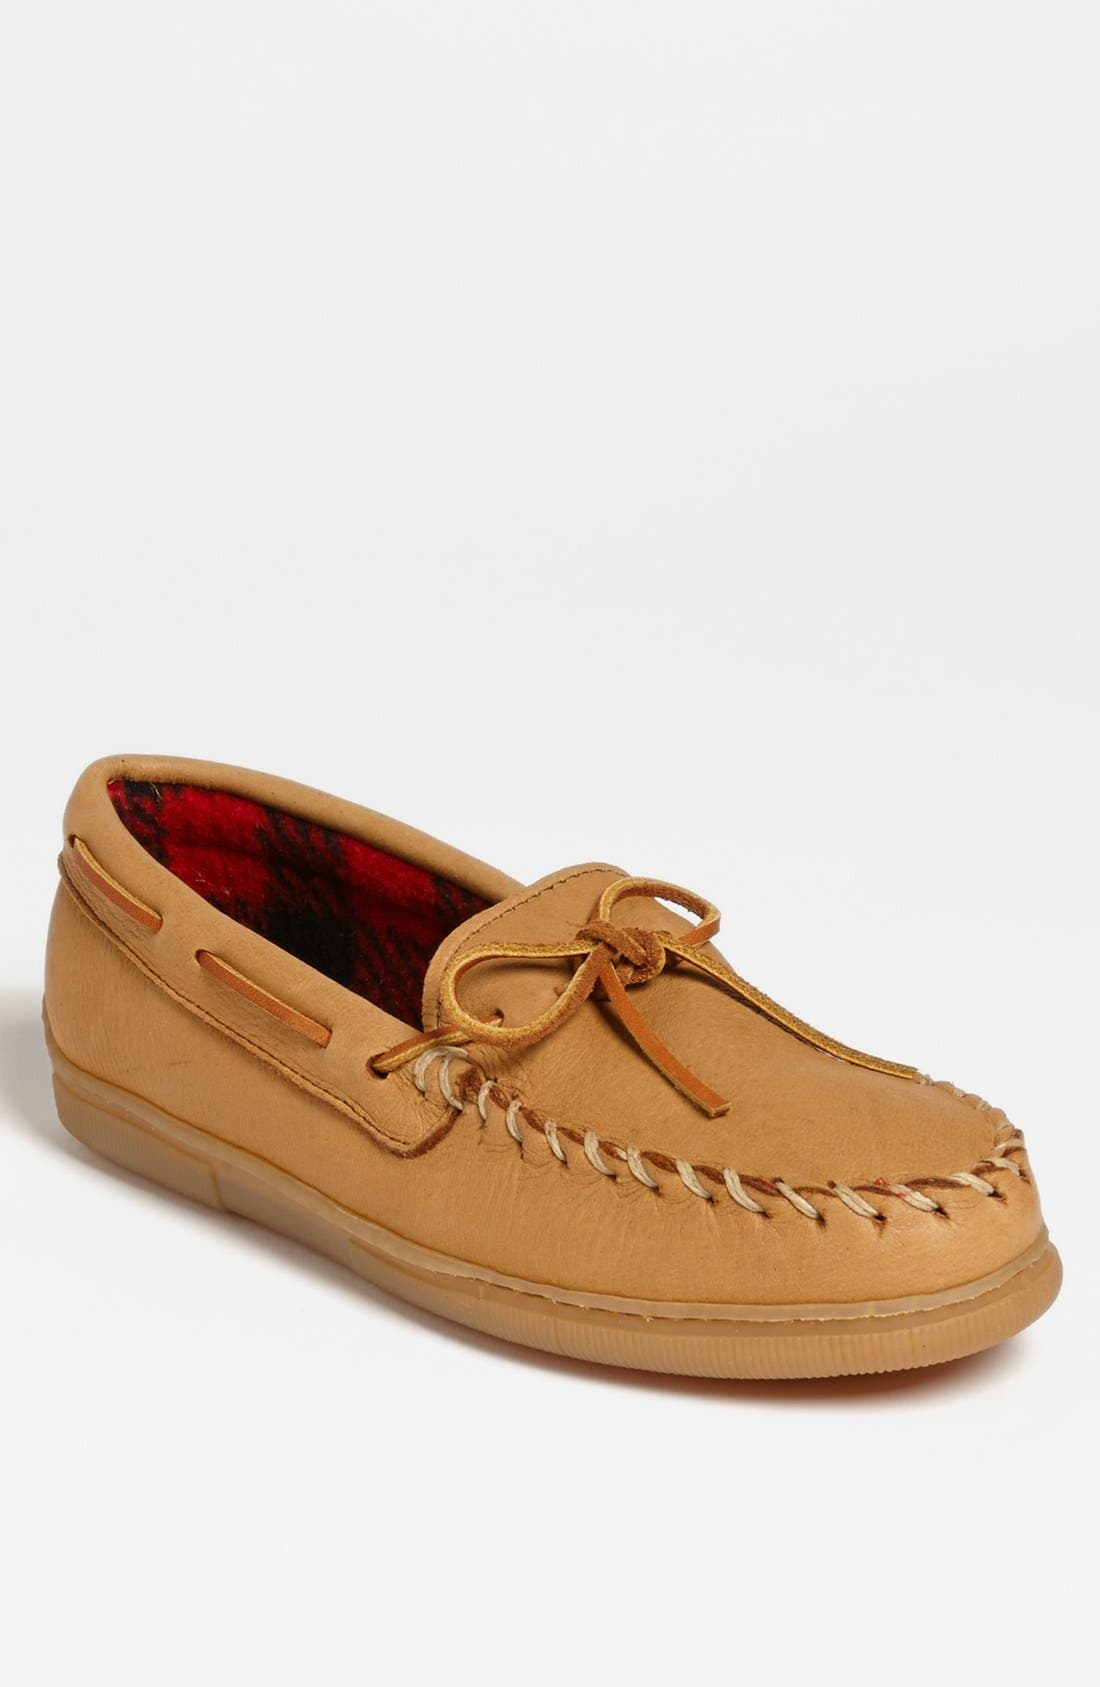 Alternate Image 1 Selected - Minnetonka Moosehide Moccasin